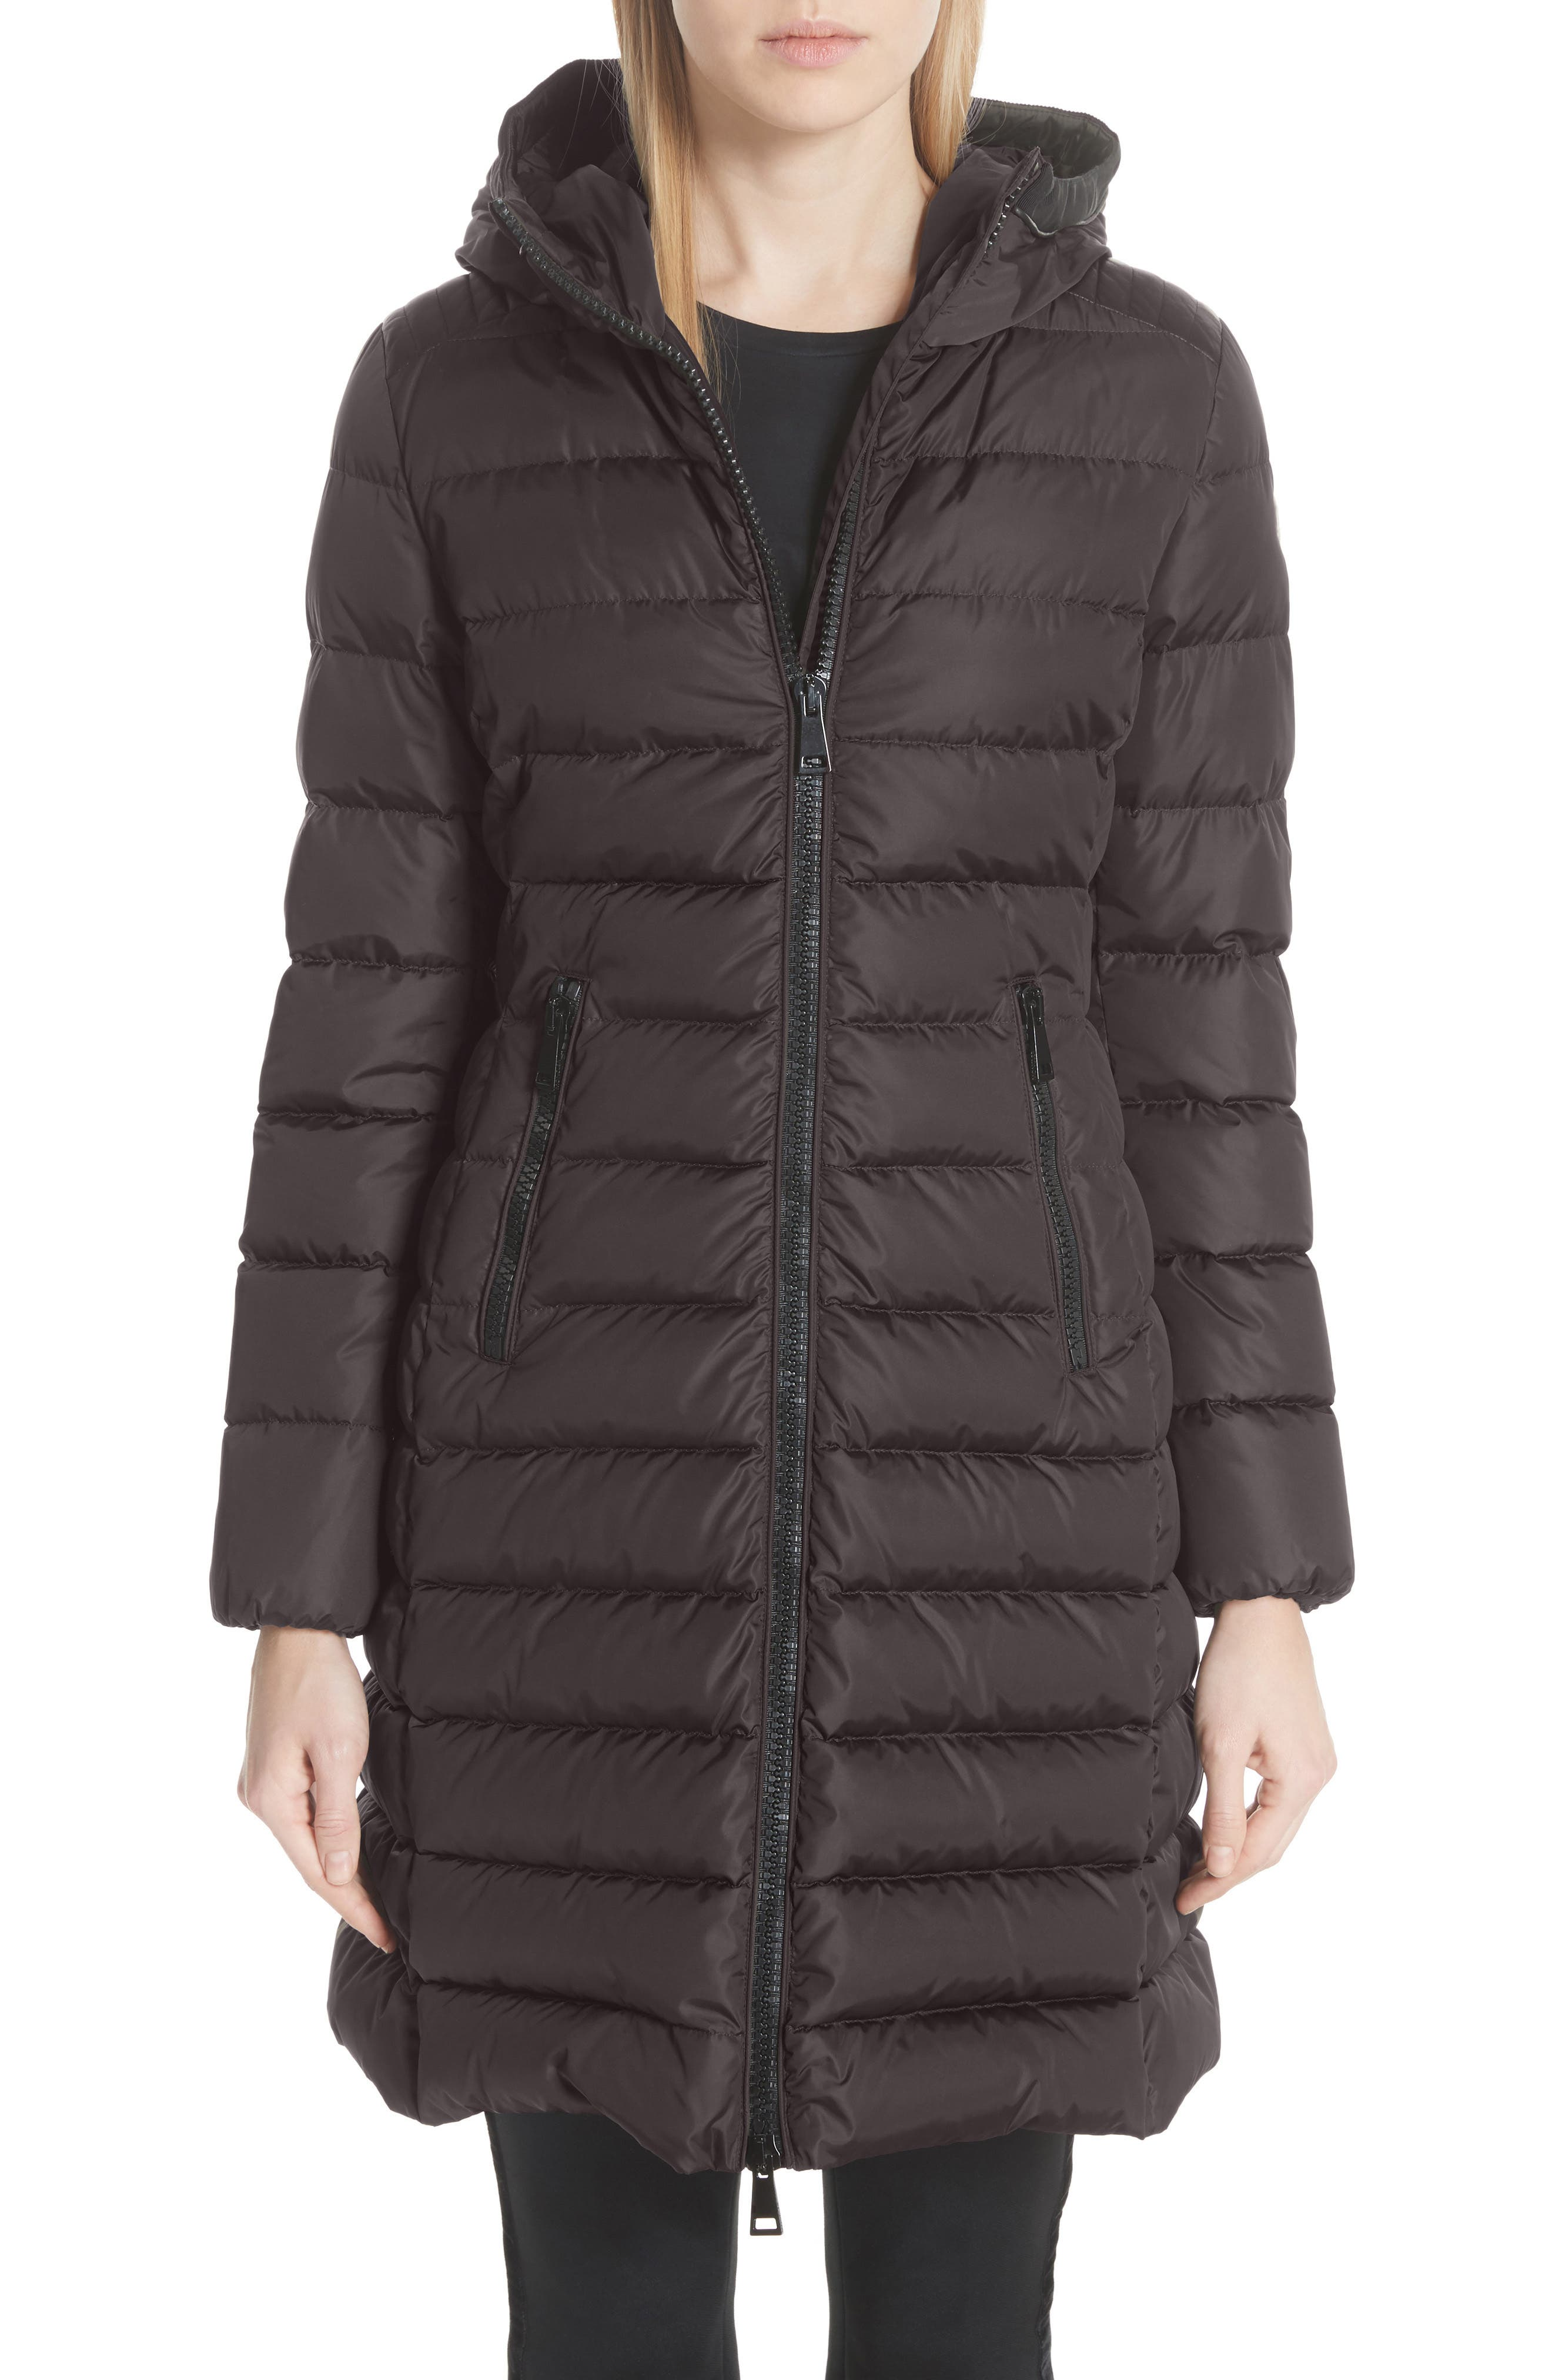 Taleve Hooded Quilted Down Coat,                             Main thumbnail 1, color,                             GREY